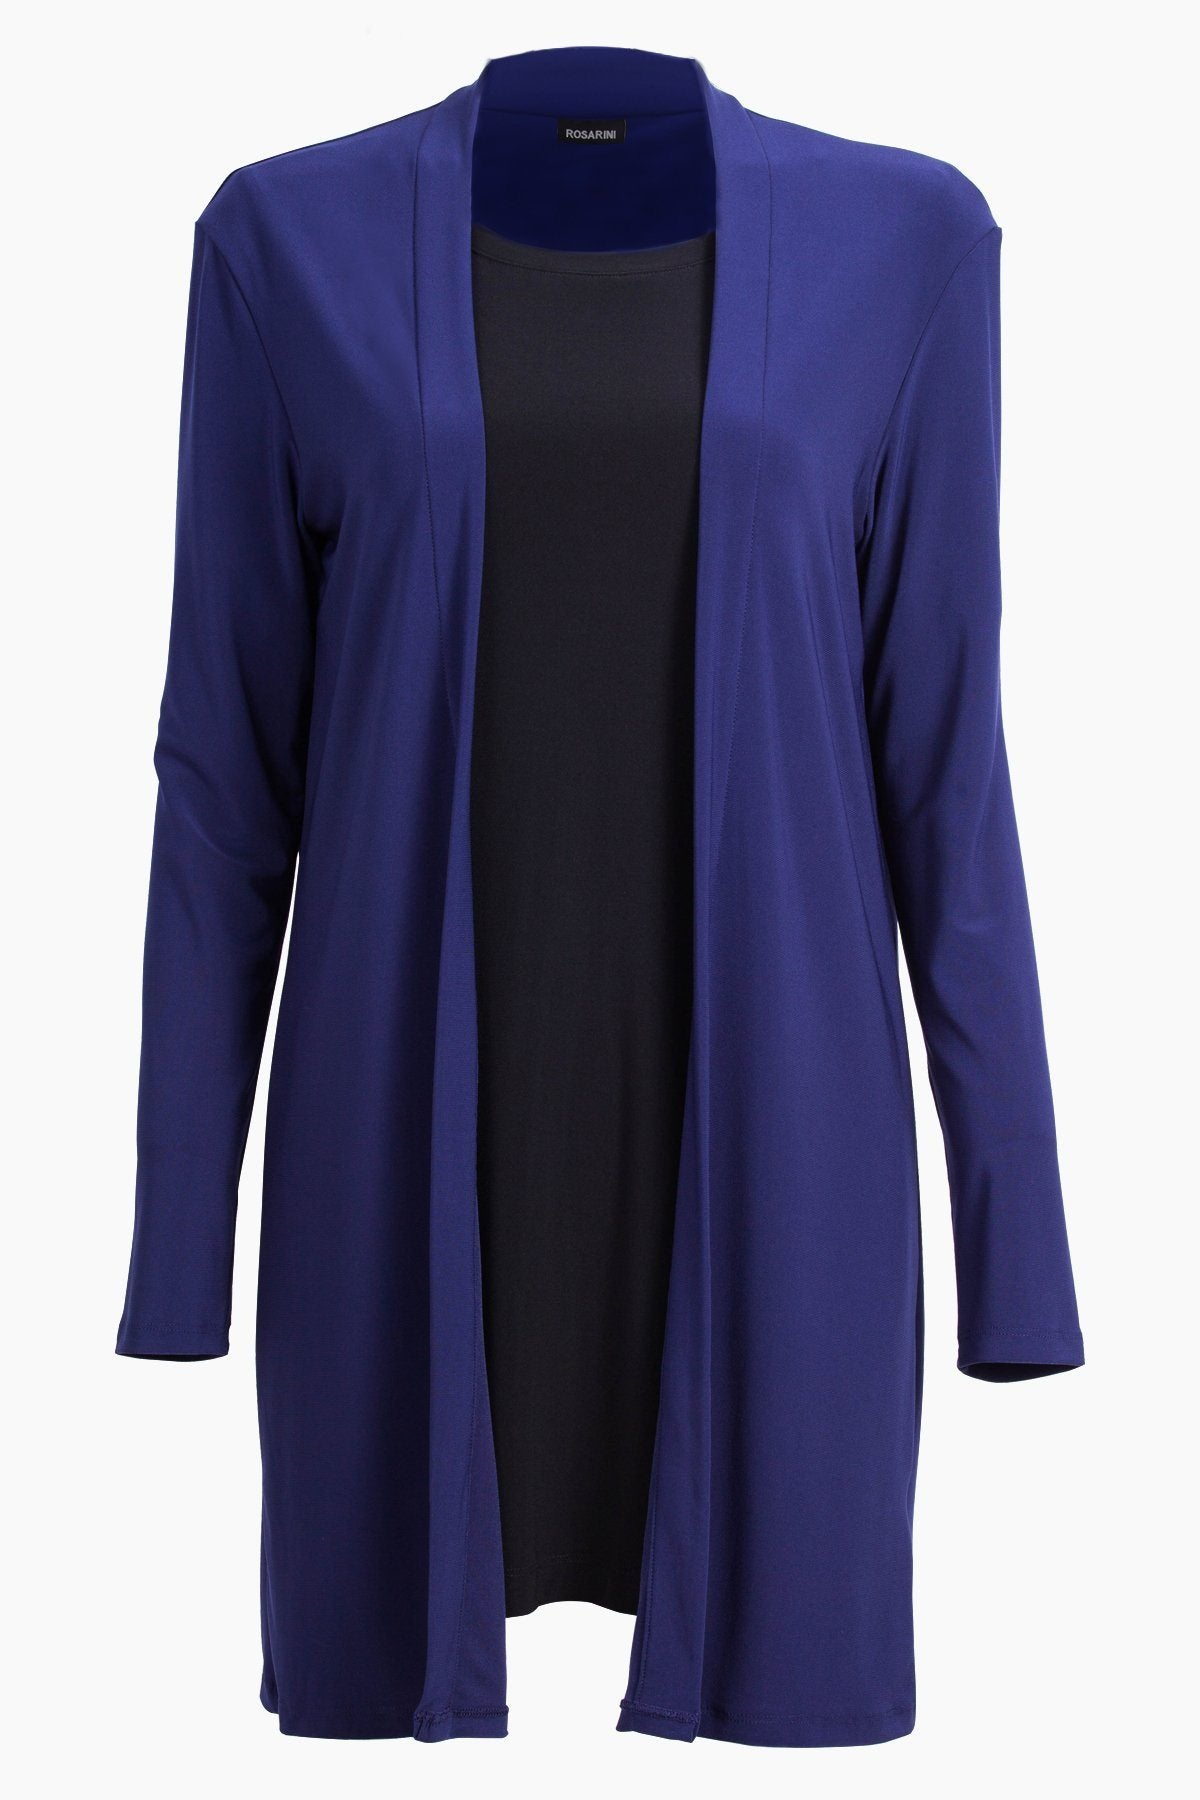 PLUS SIZE Long Sleeve Mid Length Cardigan navy